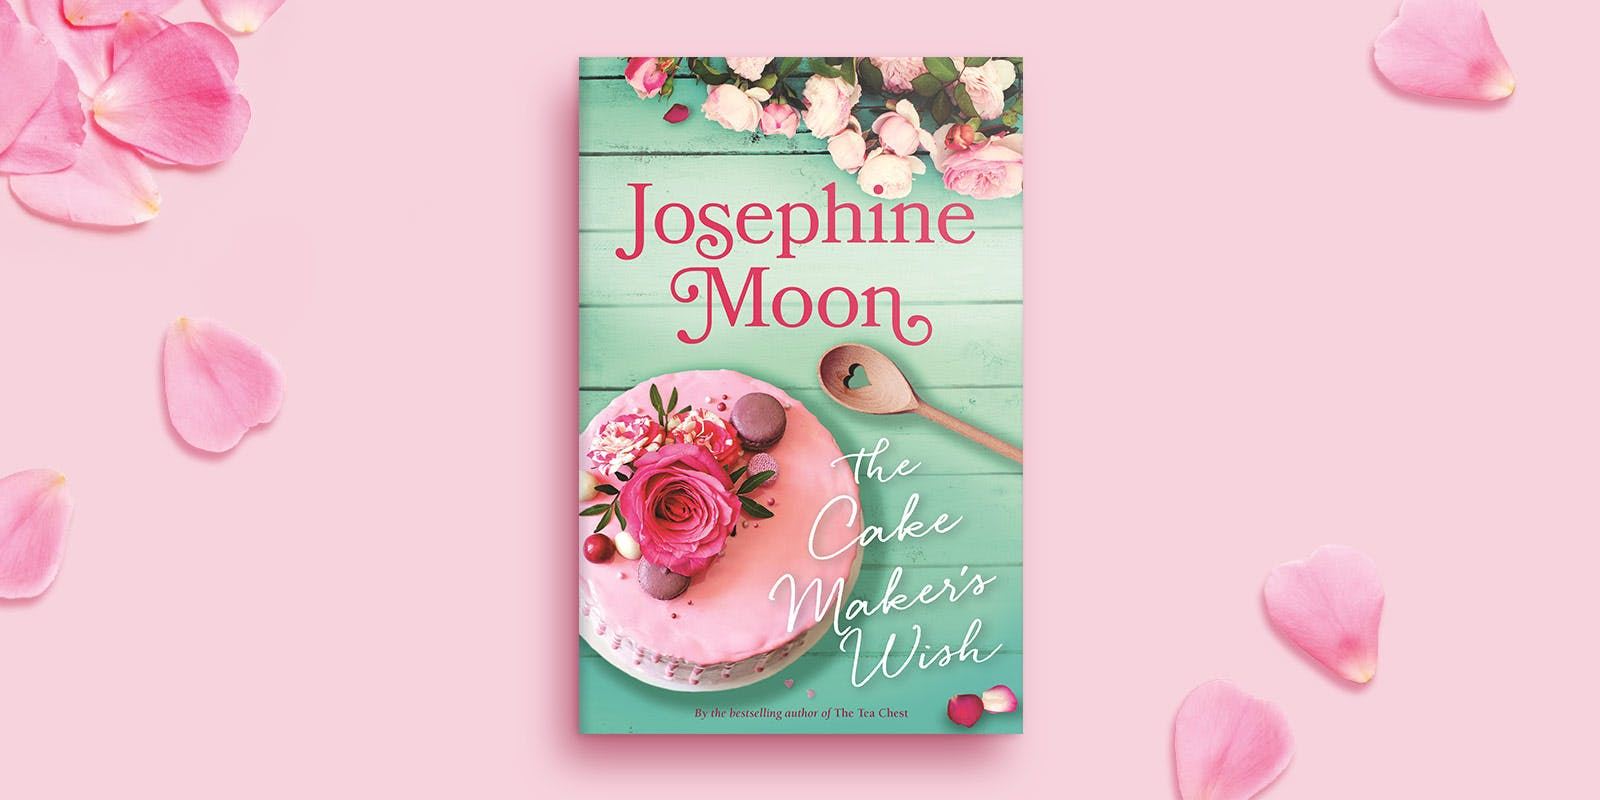 The Cake Maker's Wish book club notes